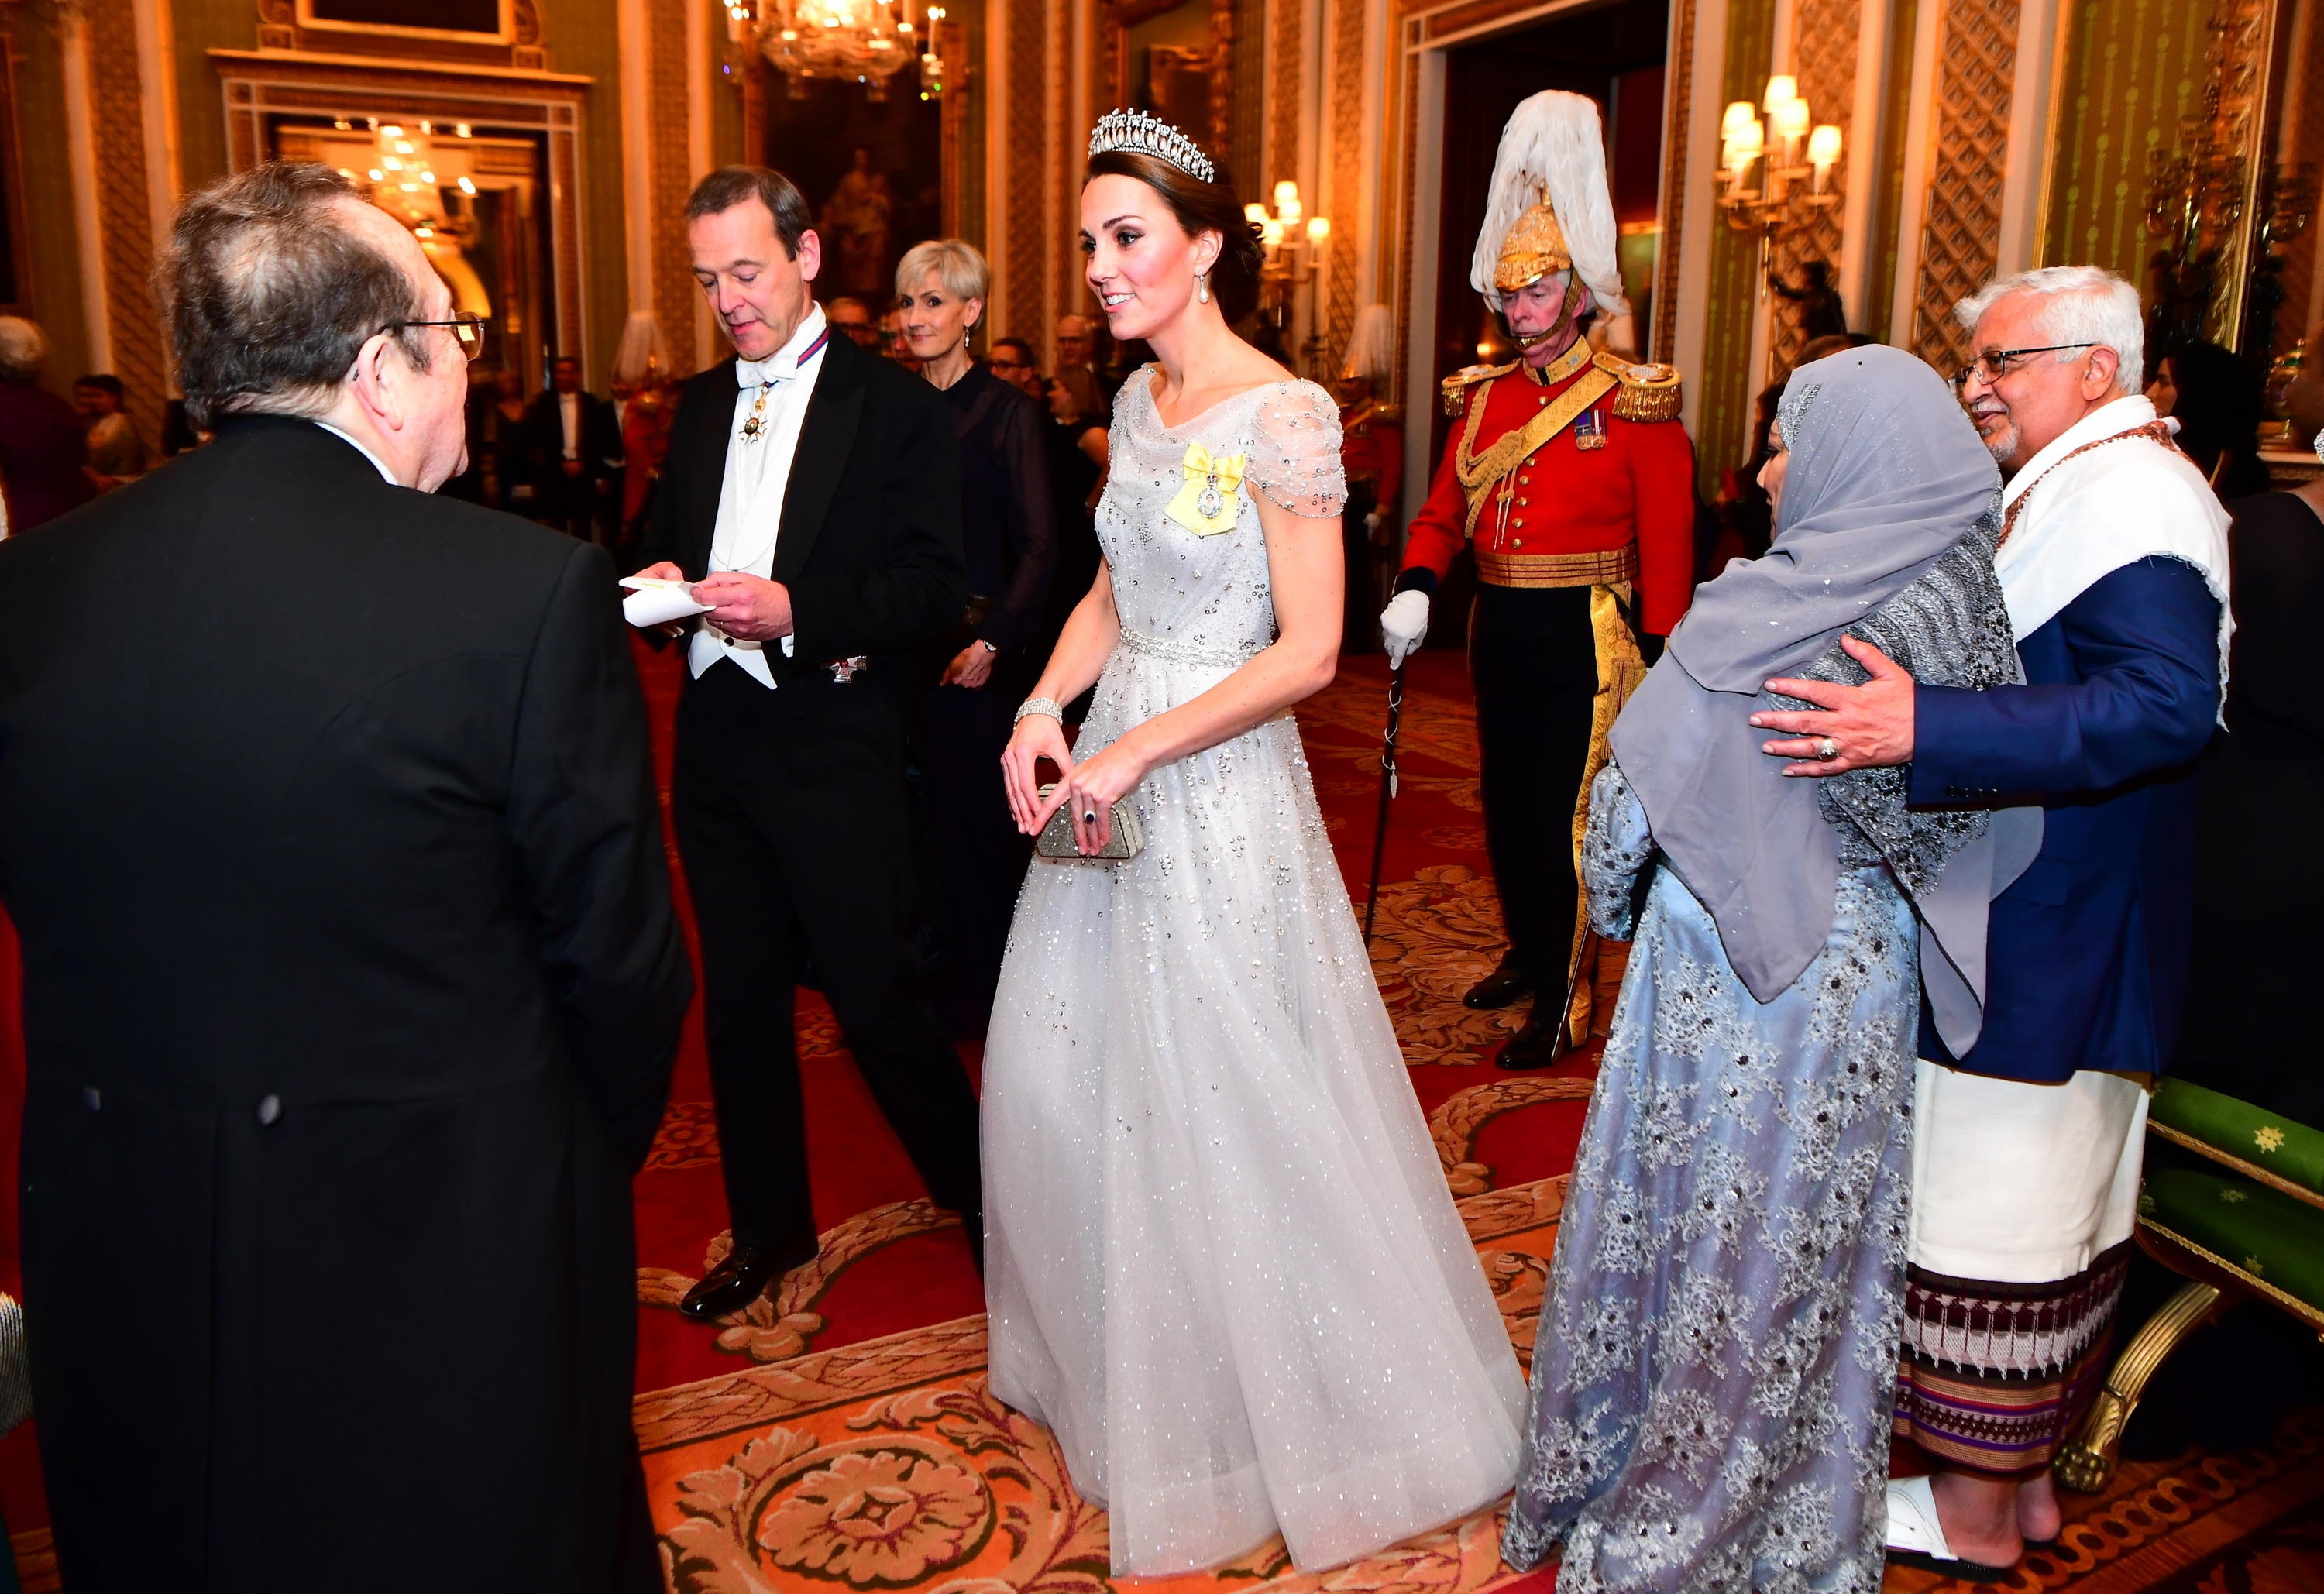 the-duke-duchess-of-cambridge-attend-evening-reception-for-members-of-the-diplomatic-corps-2